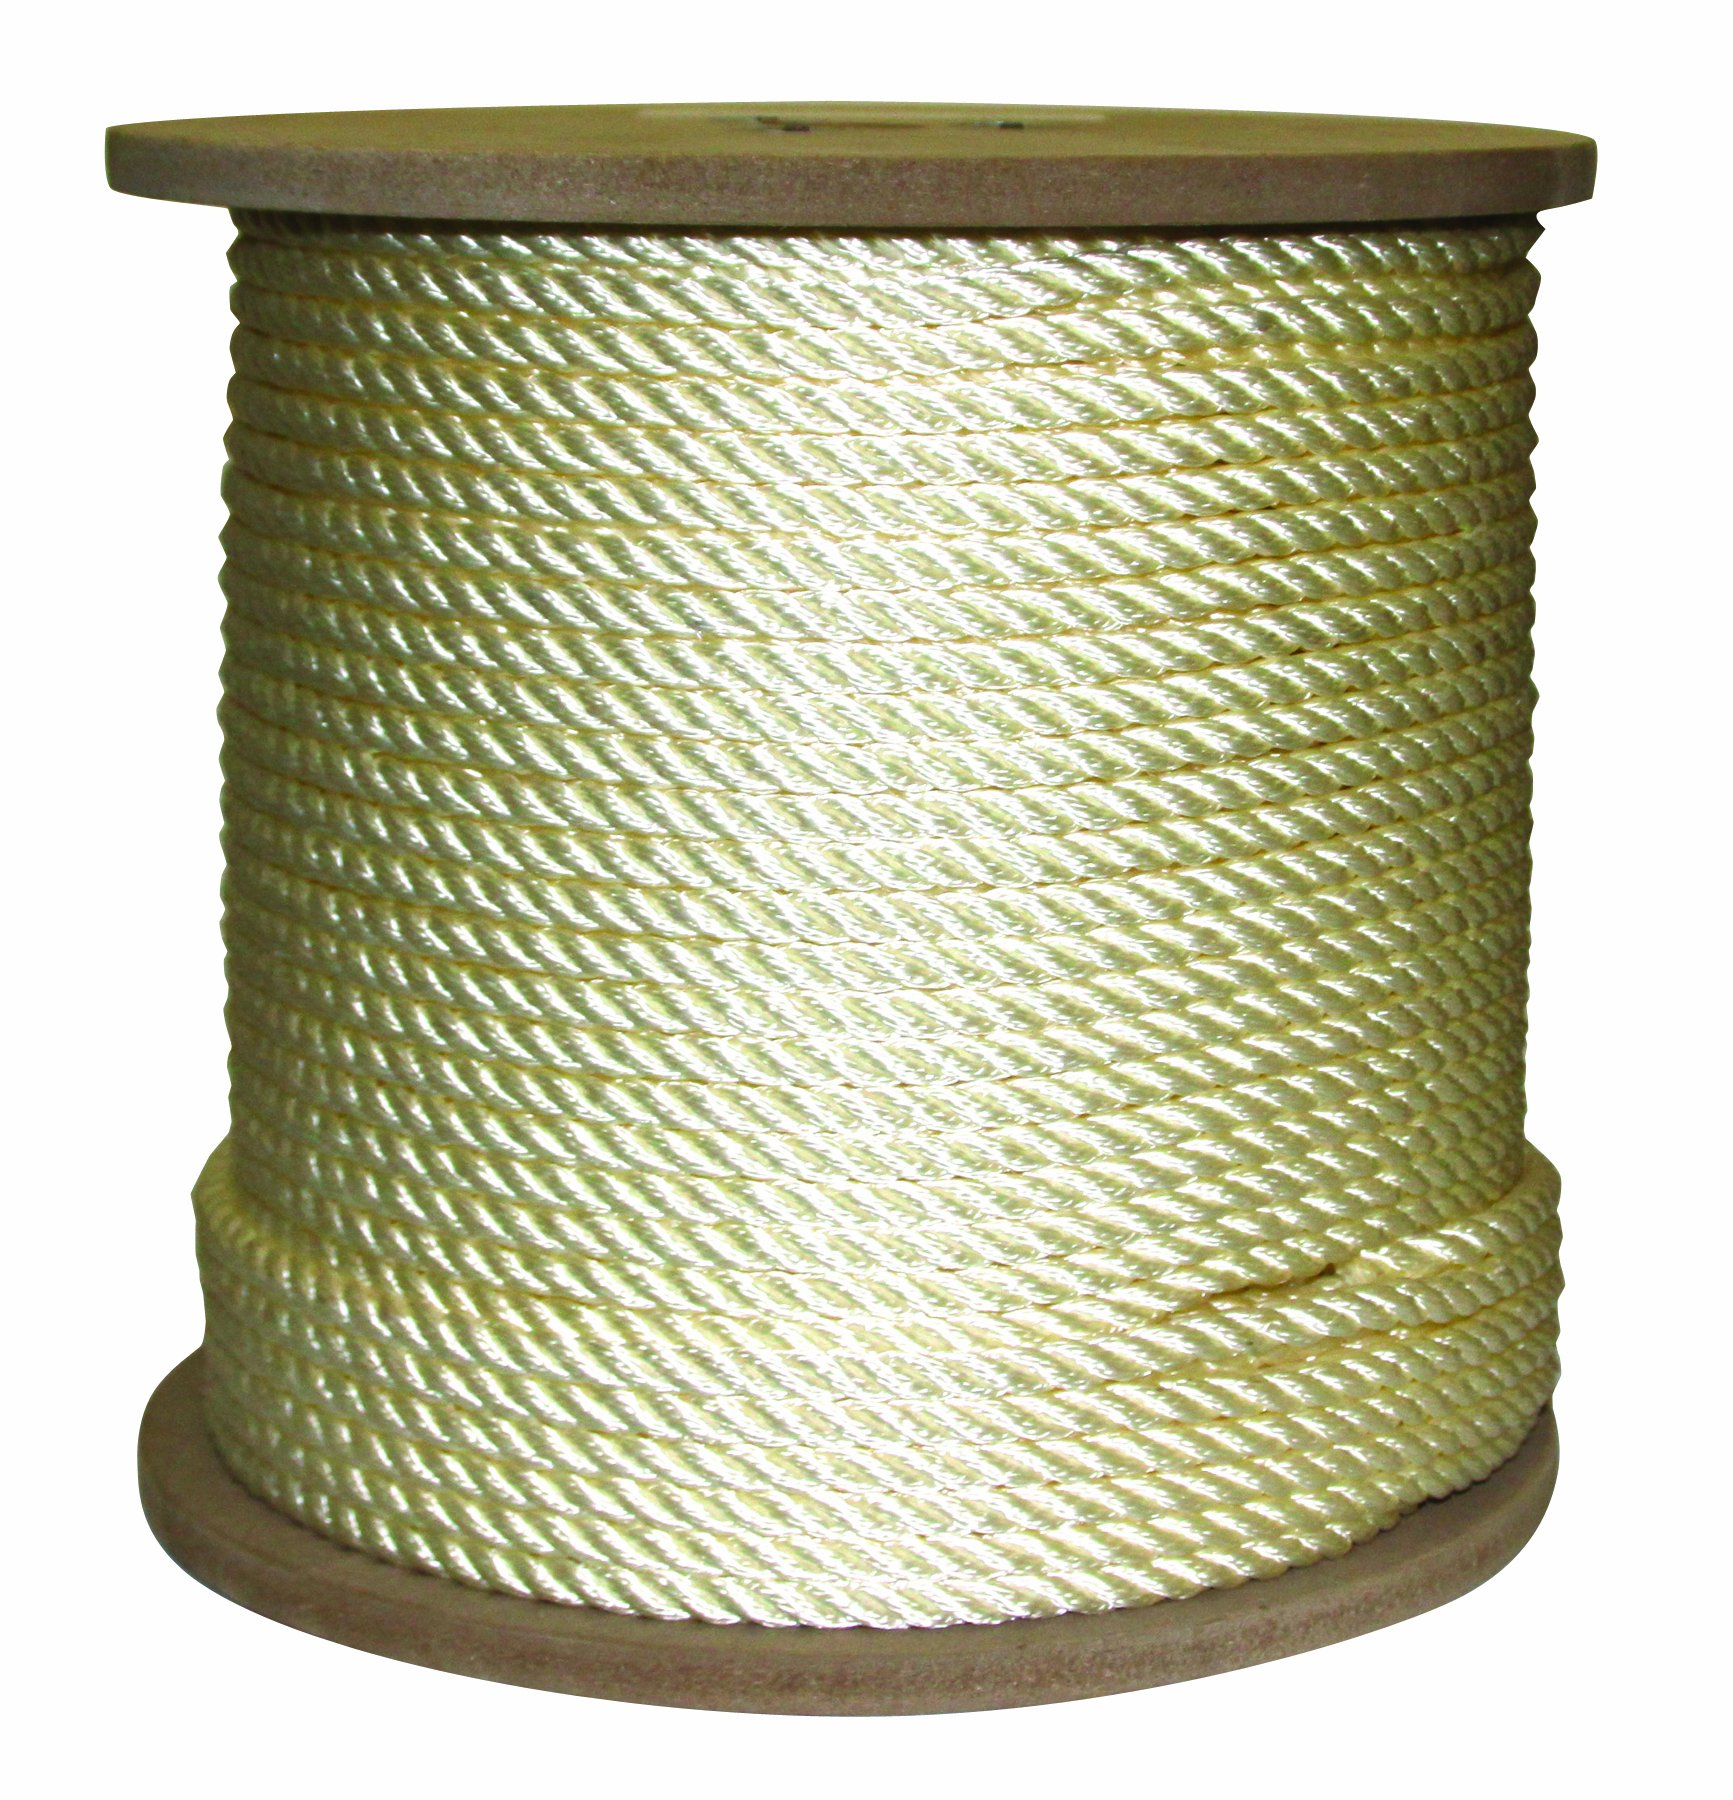 Rope King TN-38600 Twisted Nylon Rope 3/8 inch x 600 feet